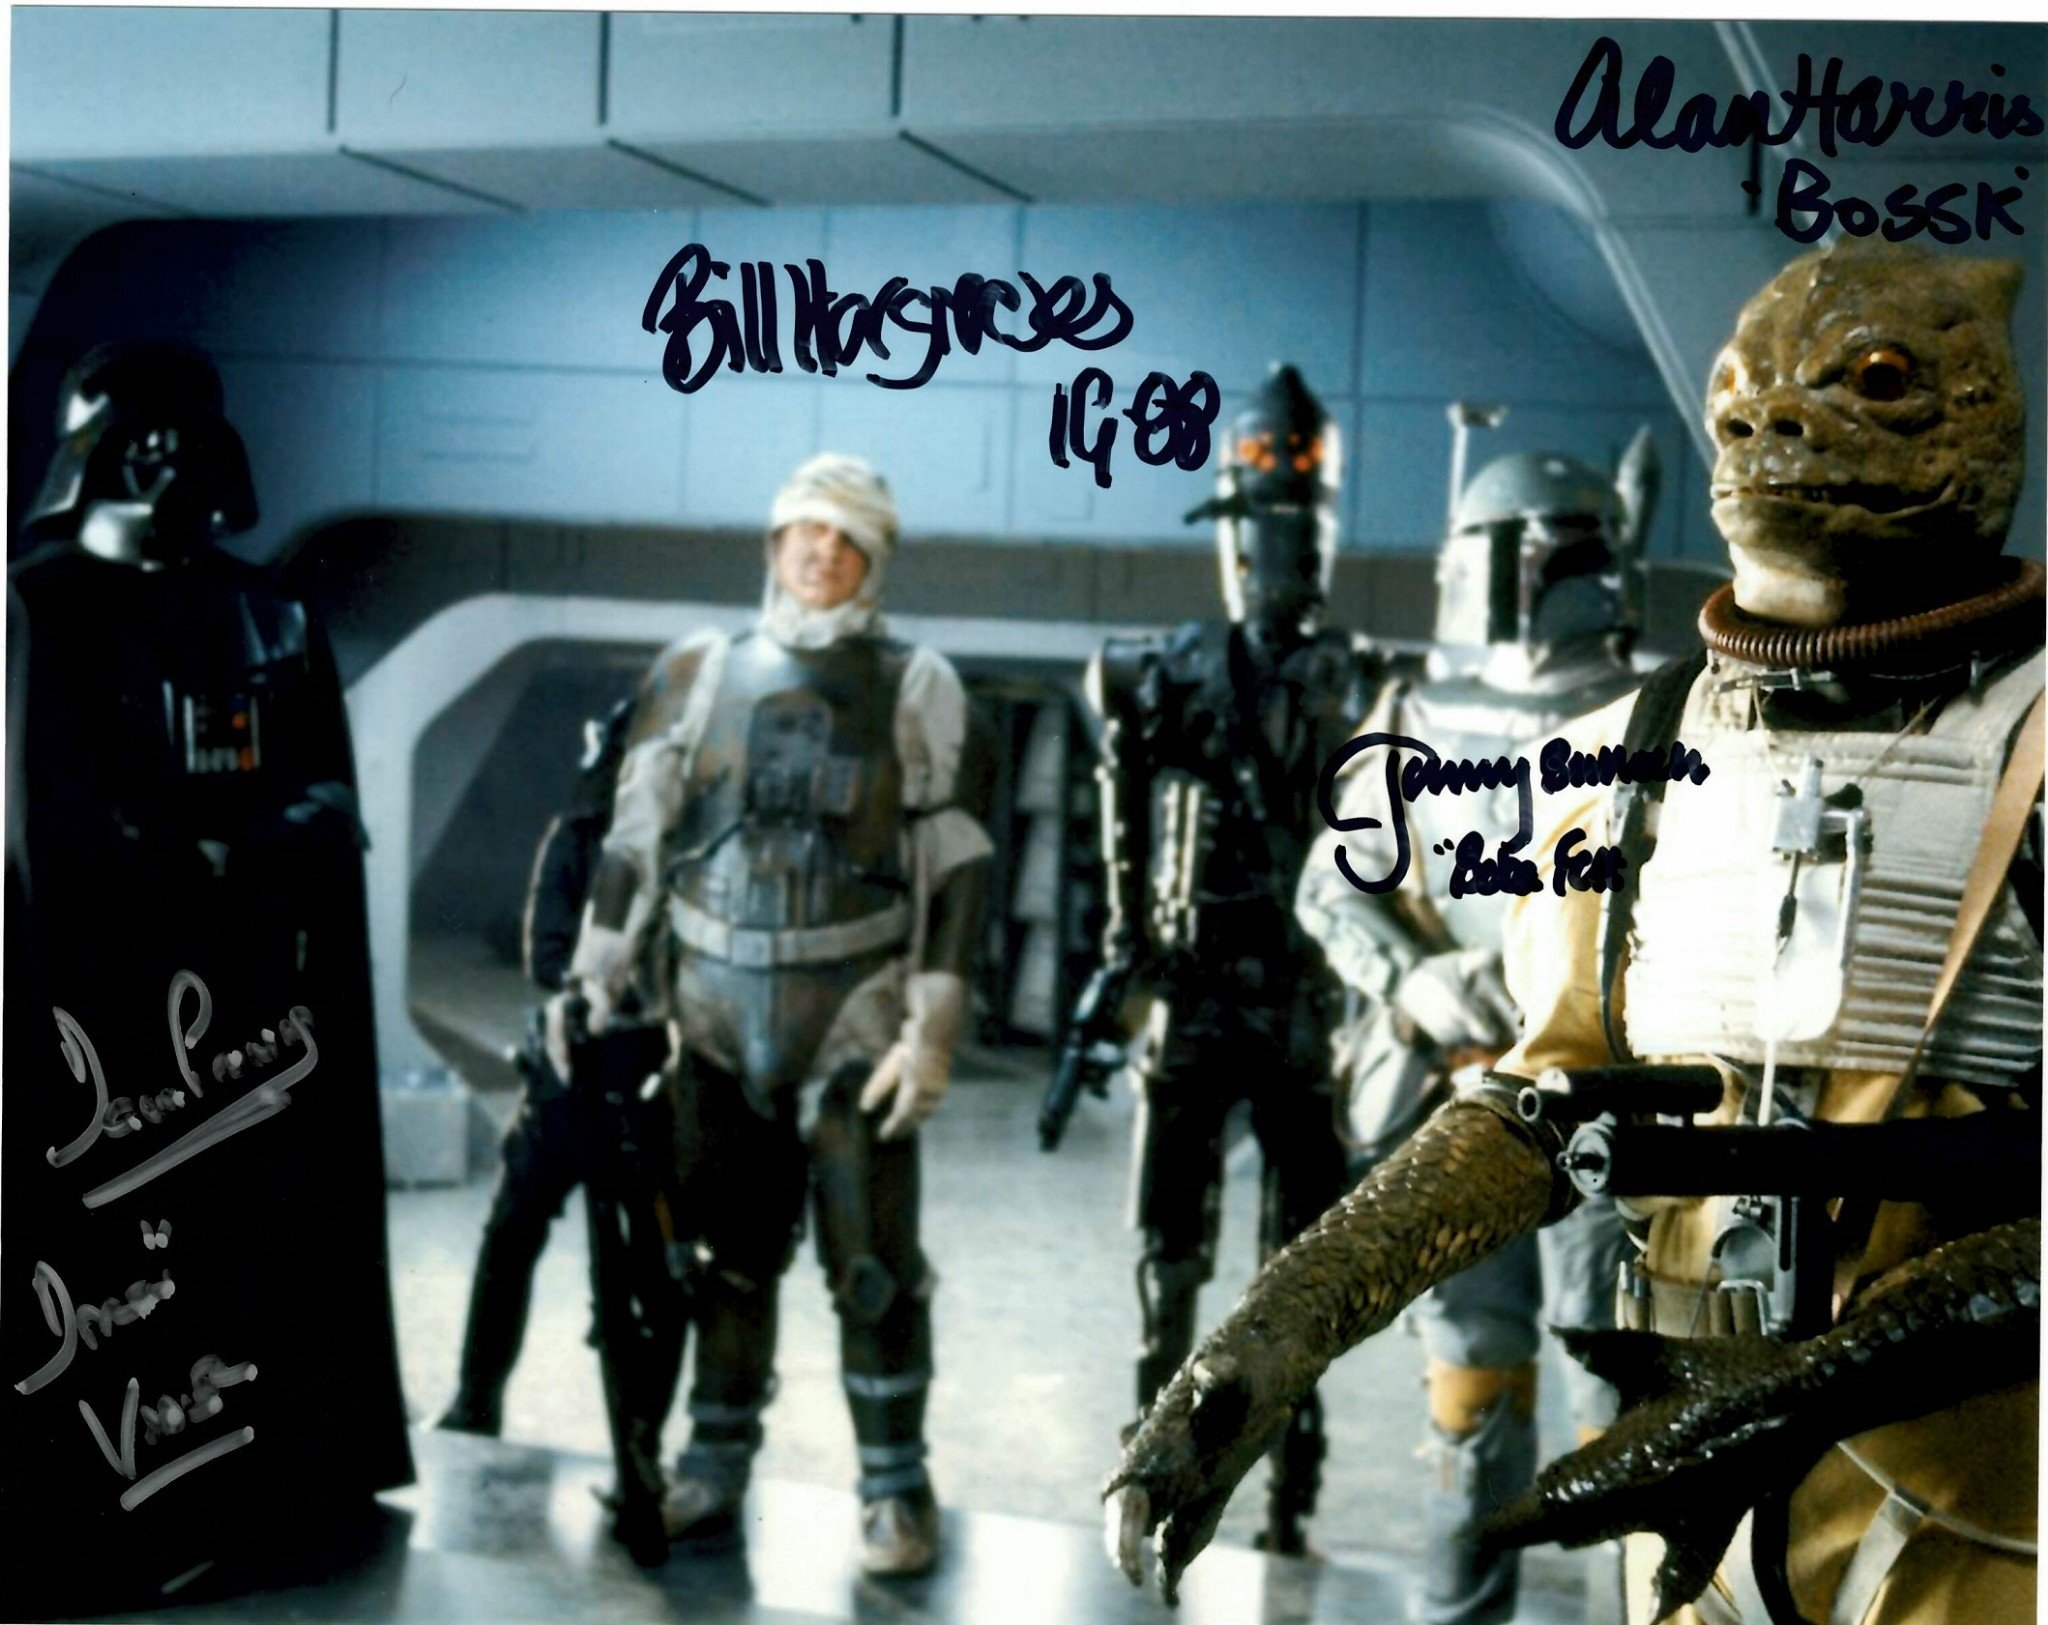 Star Wars Bounty Hunters Autograph Photo Darth Vader Ig 88 Boba Fett Bossk